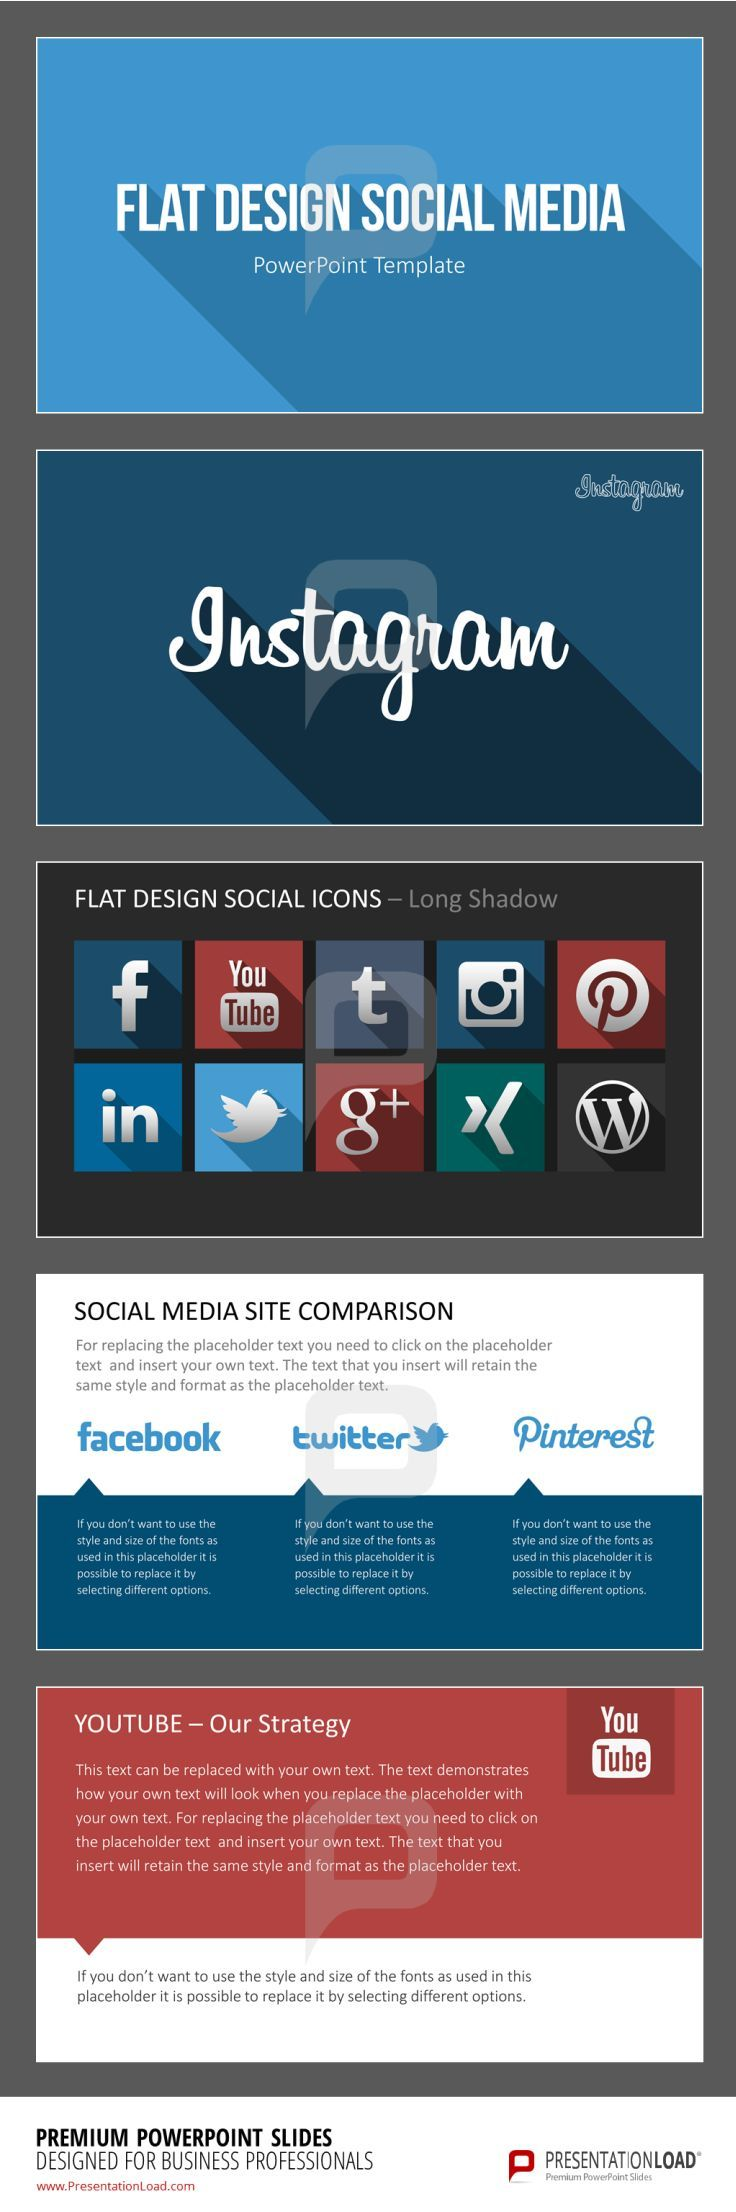 121 best marketing powerpoint templates images on pinterest flat design social media the flat design social media templates for powerpoint include a wide range of social media icons in the modern flat design for alramifo Gallery